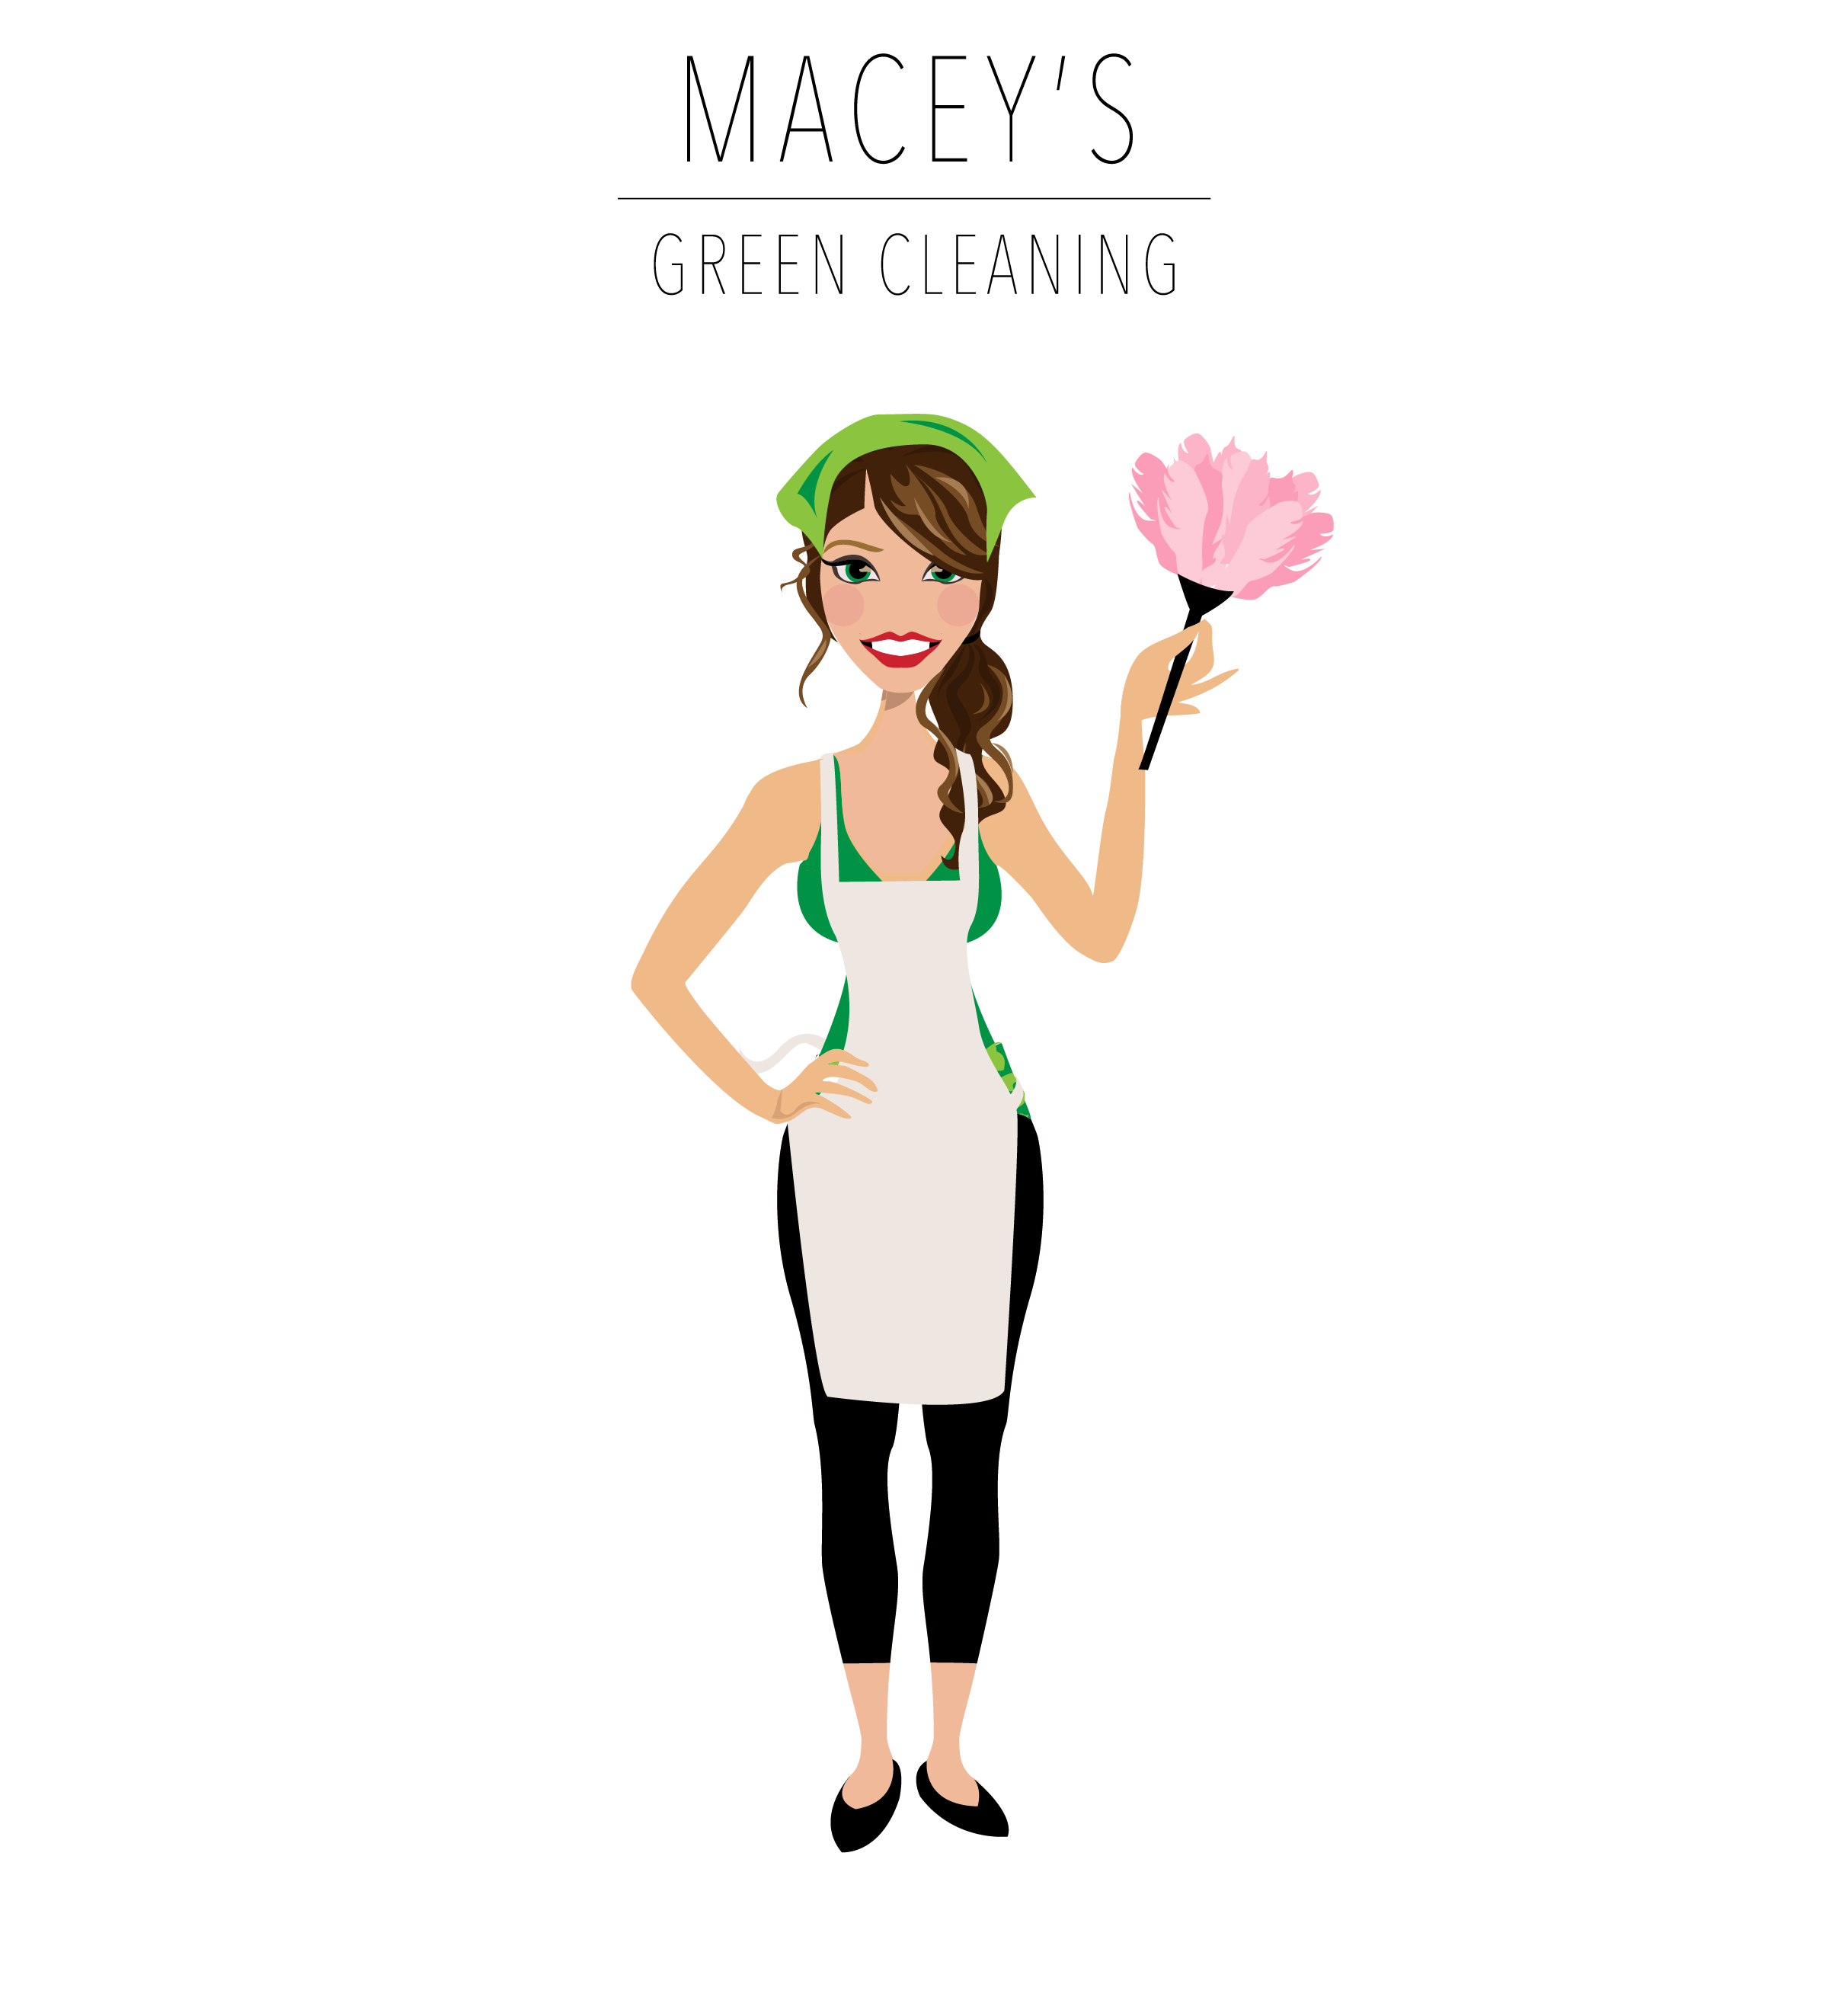 Final Design of Custom Portrait illustration - Here is the final design that Macey approved. It is a beautiful vector illustration of her Green Cleaning Business.This type of Design works wonderfully for Cleaning Services.